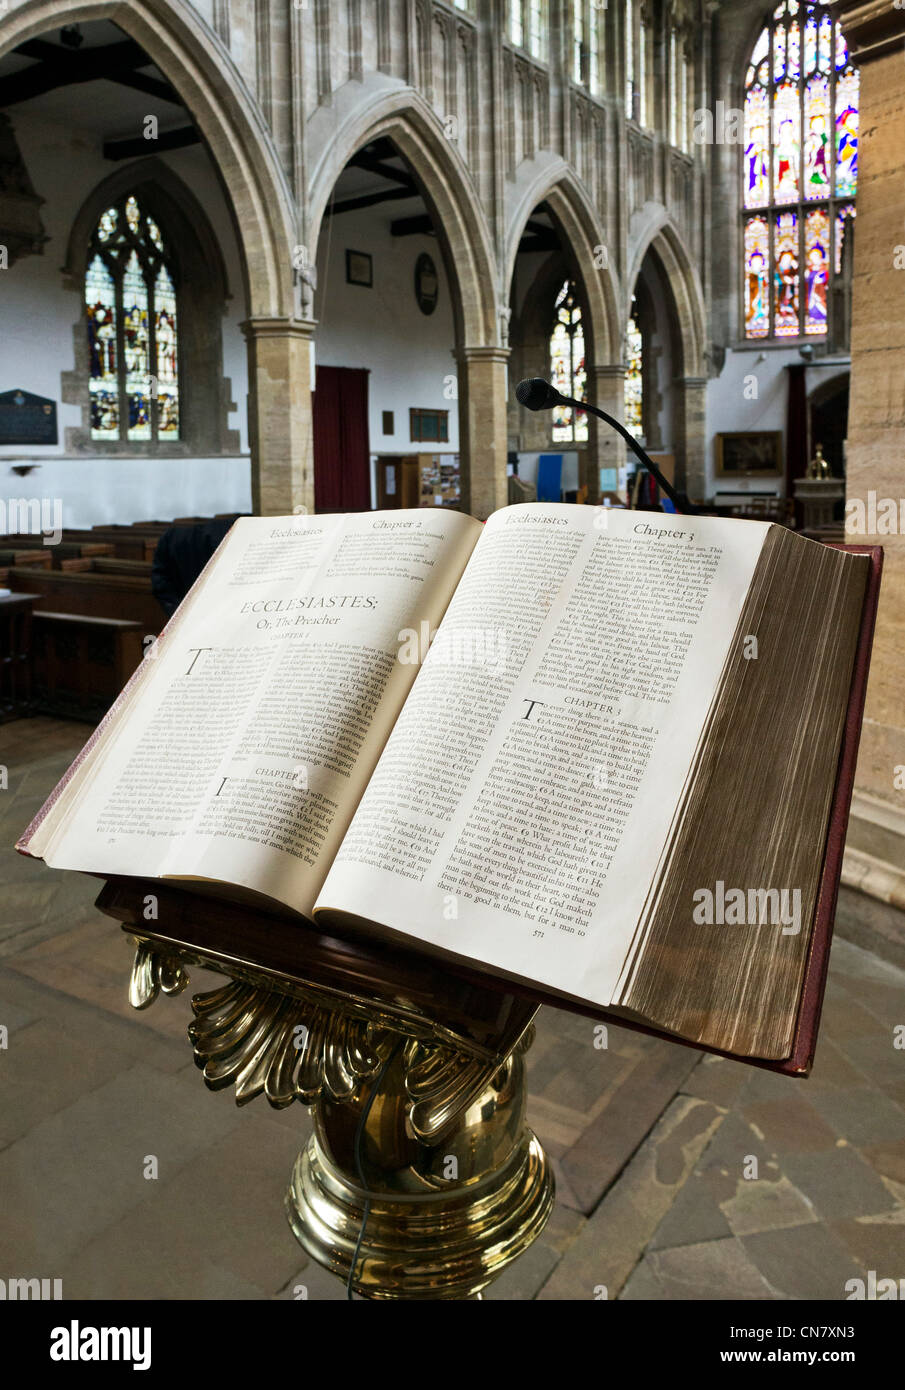 Holy bible open at the Book of Ecclesiastes, Church of the Holy Trinity, Stratford-upon-Avon, Warwickshire, England, - Stock Image